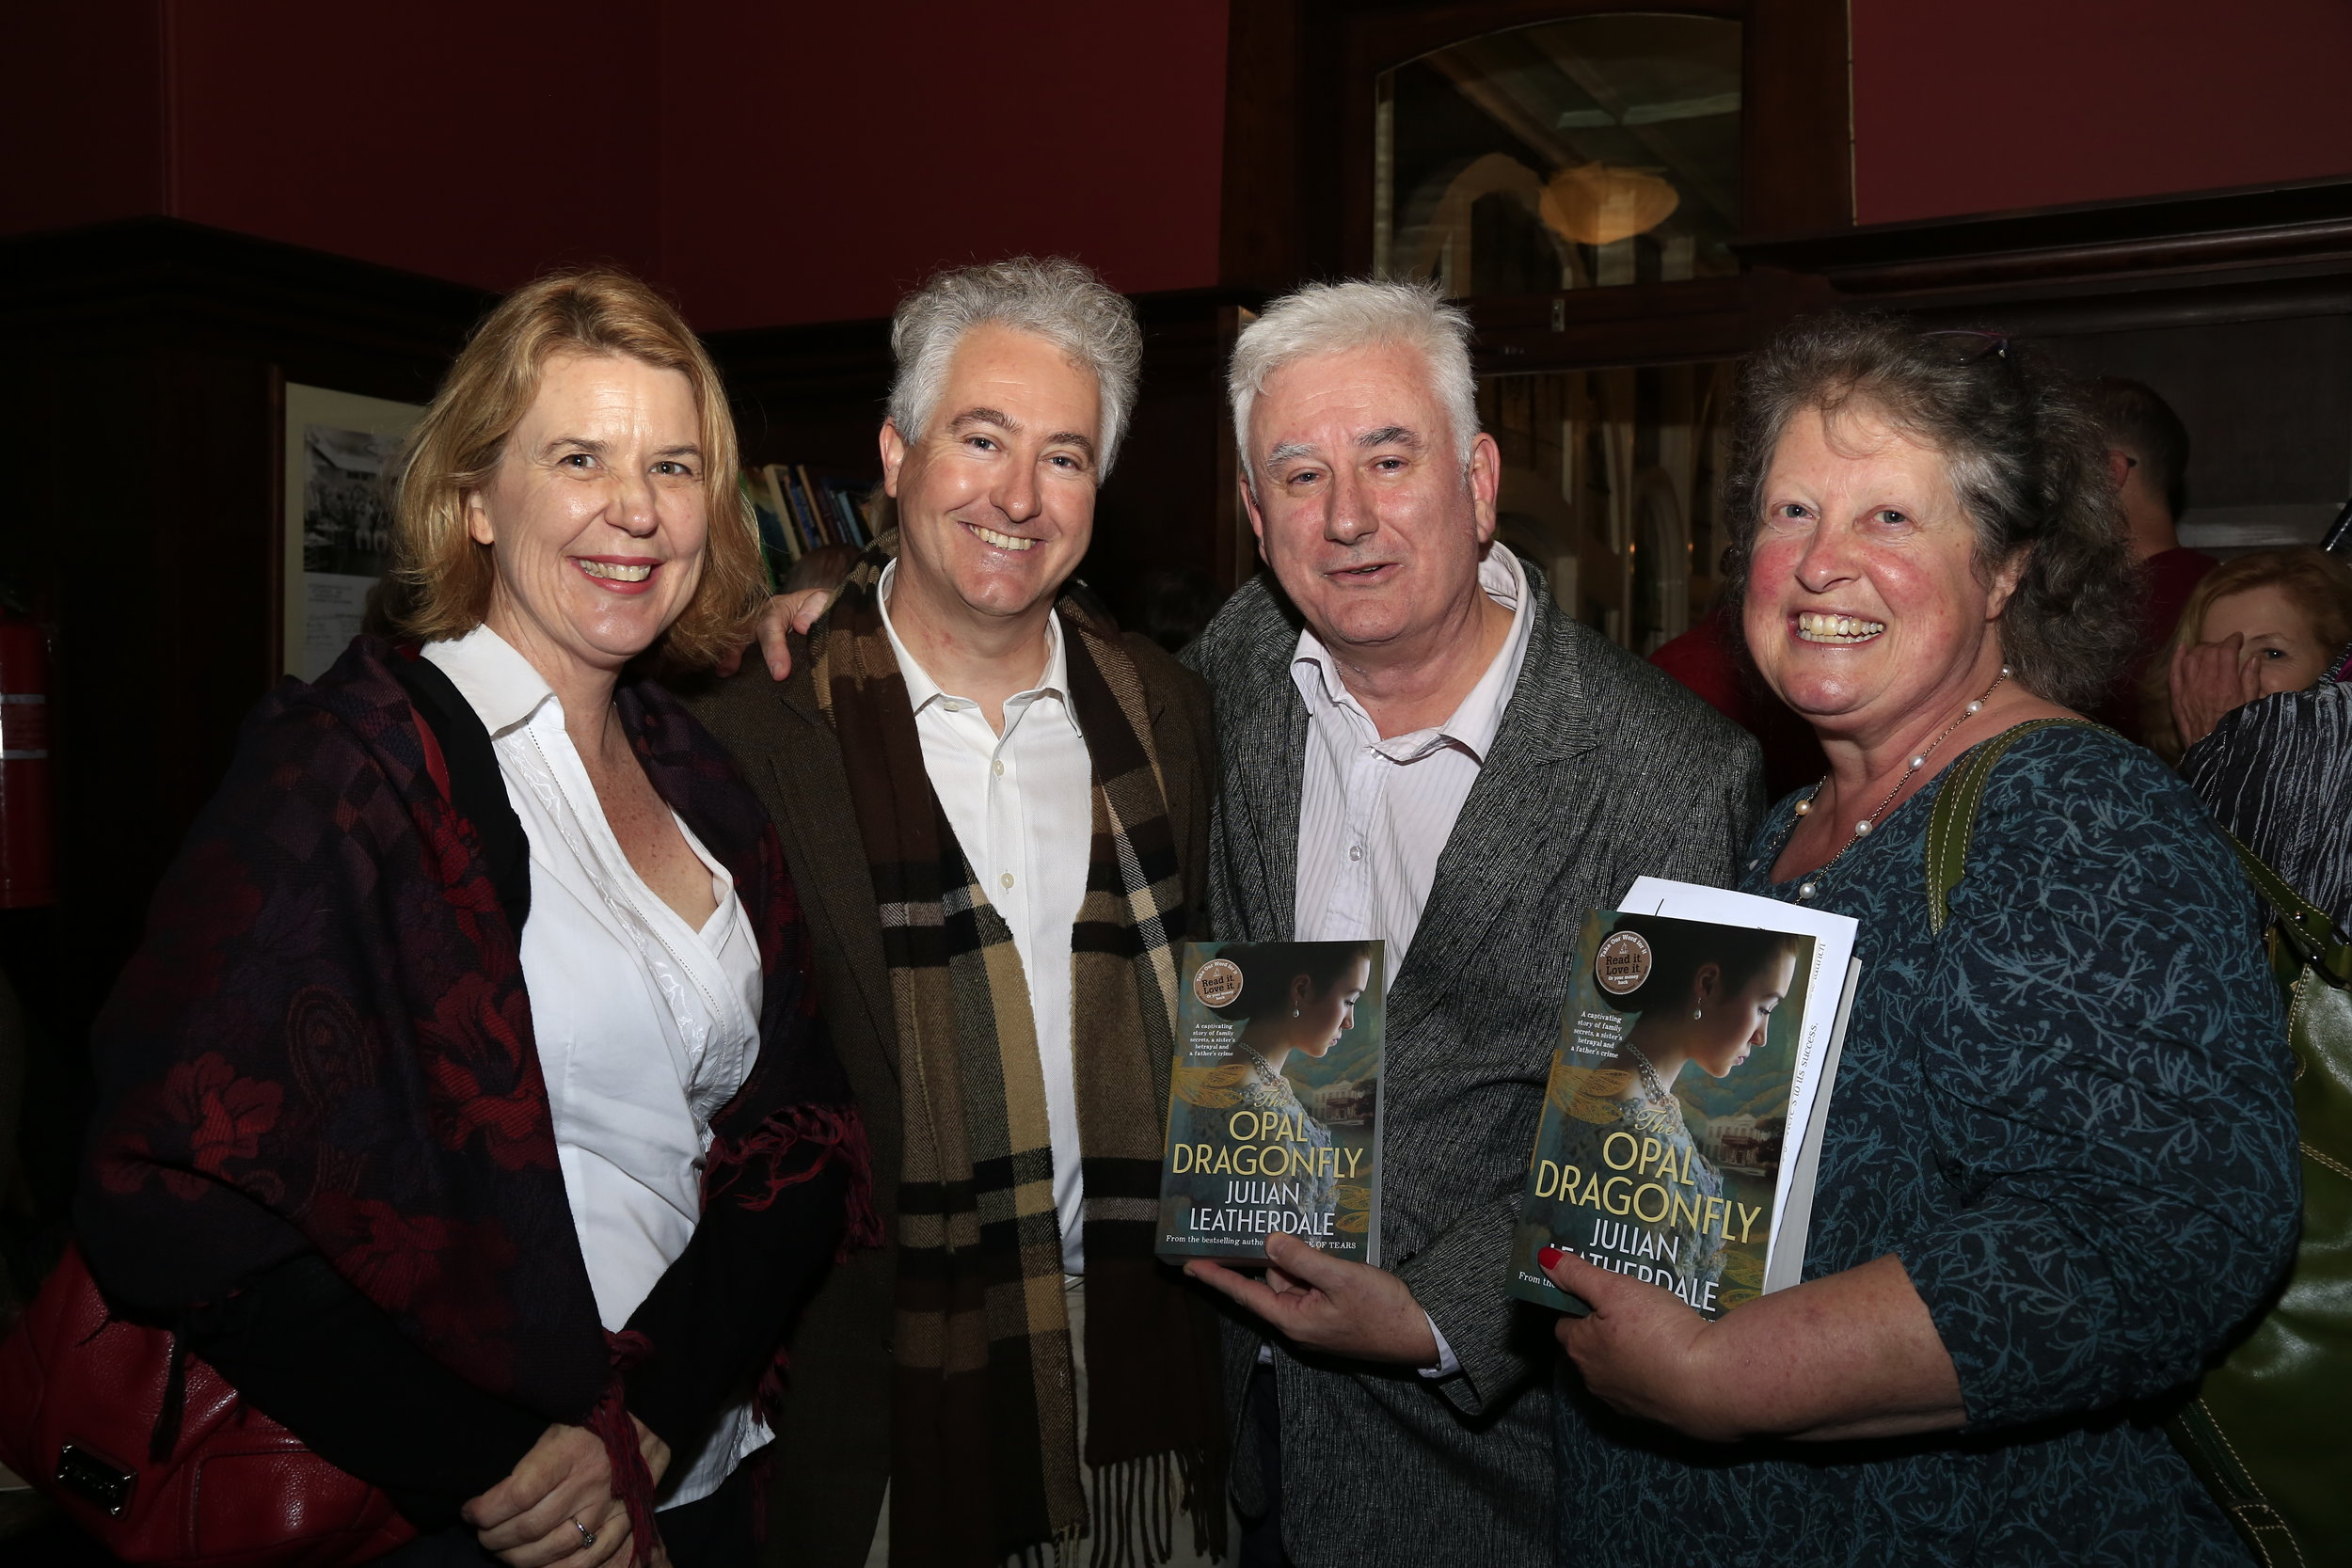 L-R: Alison Chivers, Adam Searle, Julian Leatherdale and Annette Barlow (publisher, A&U)